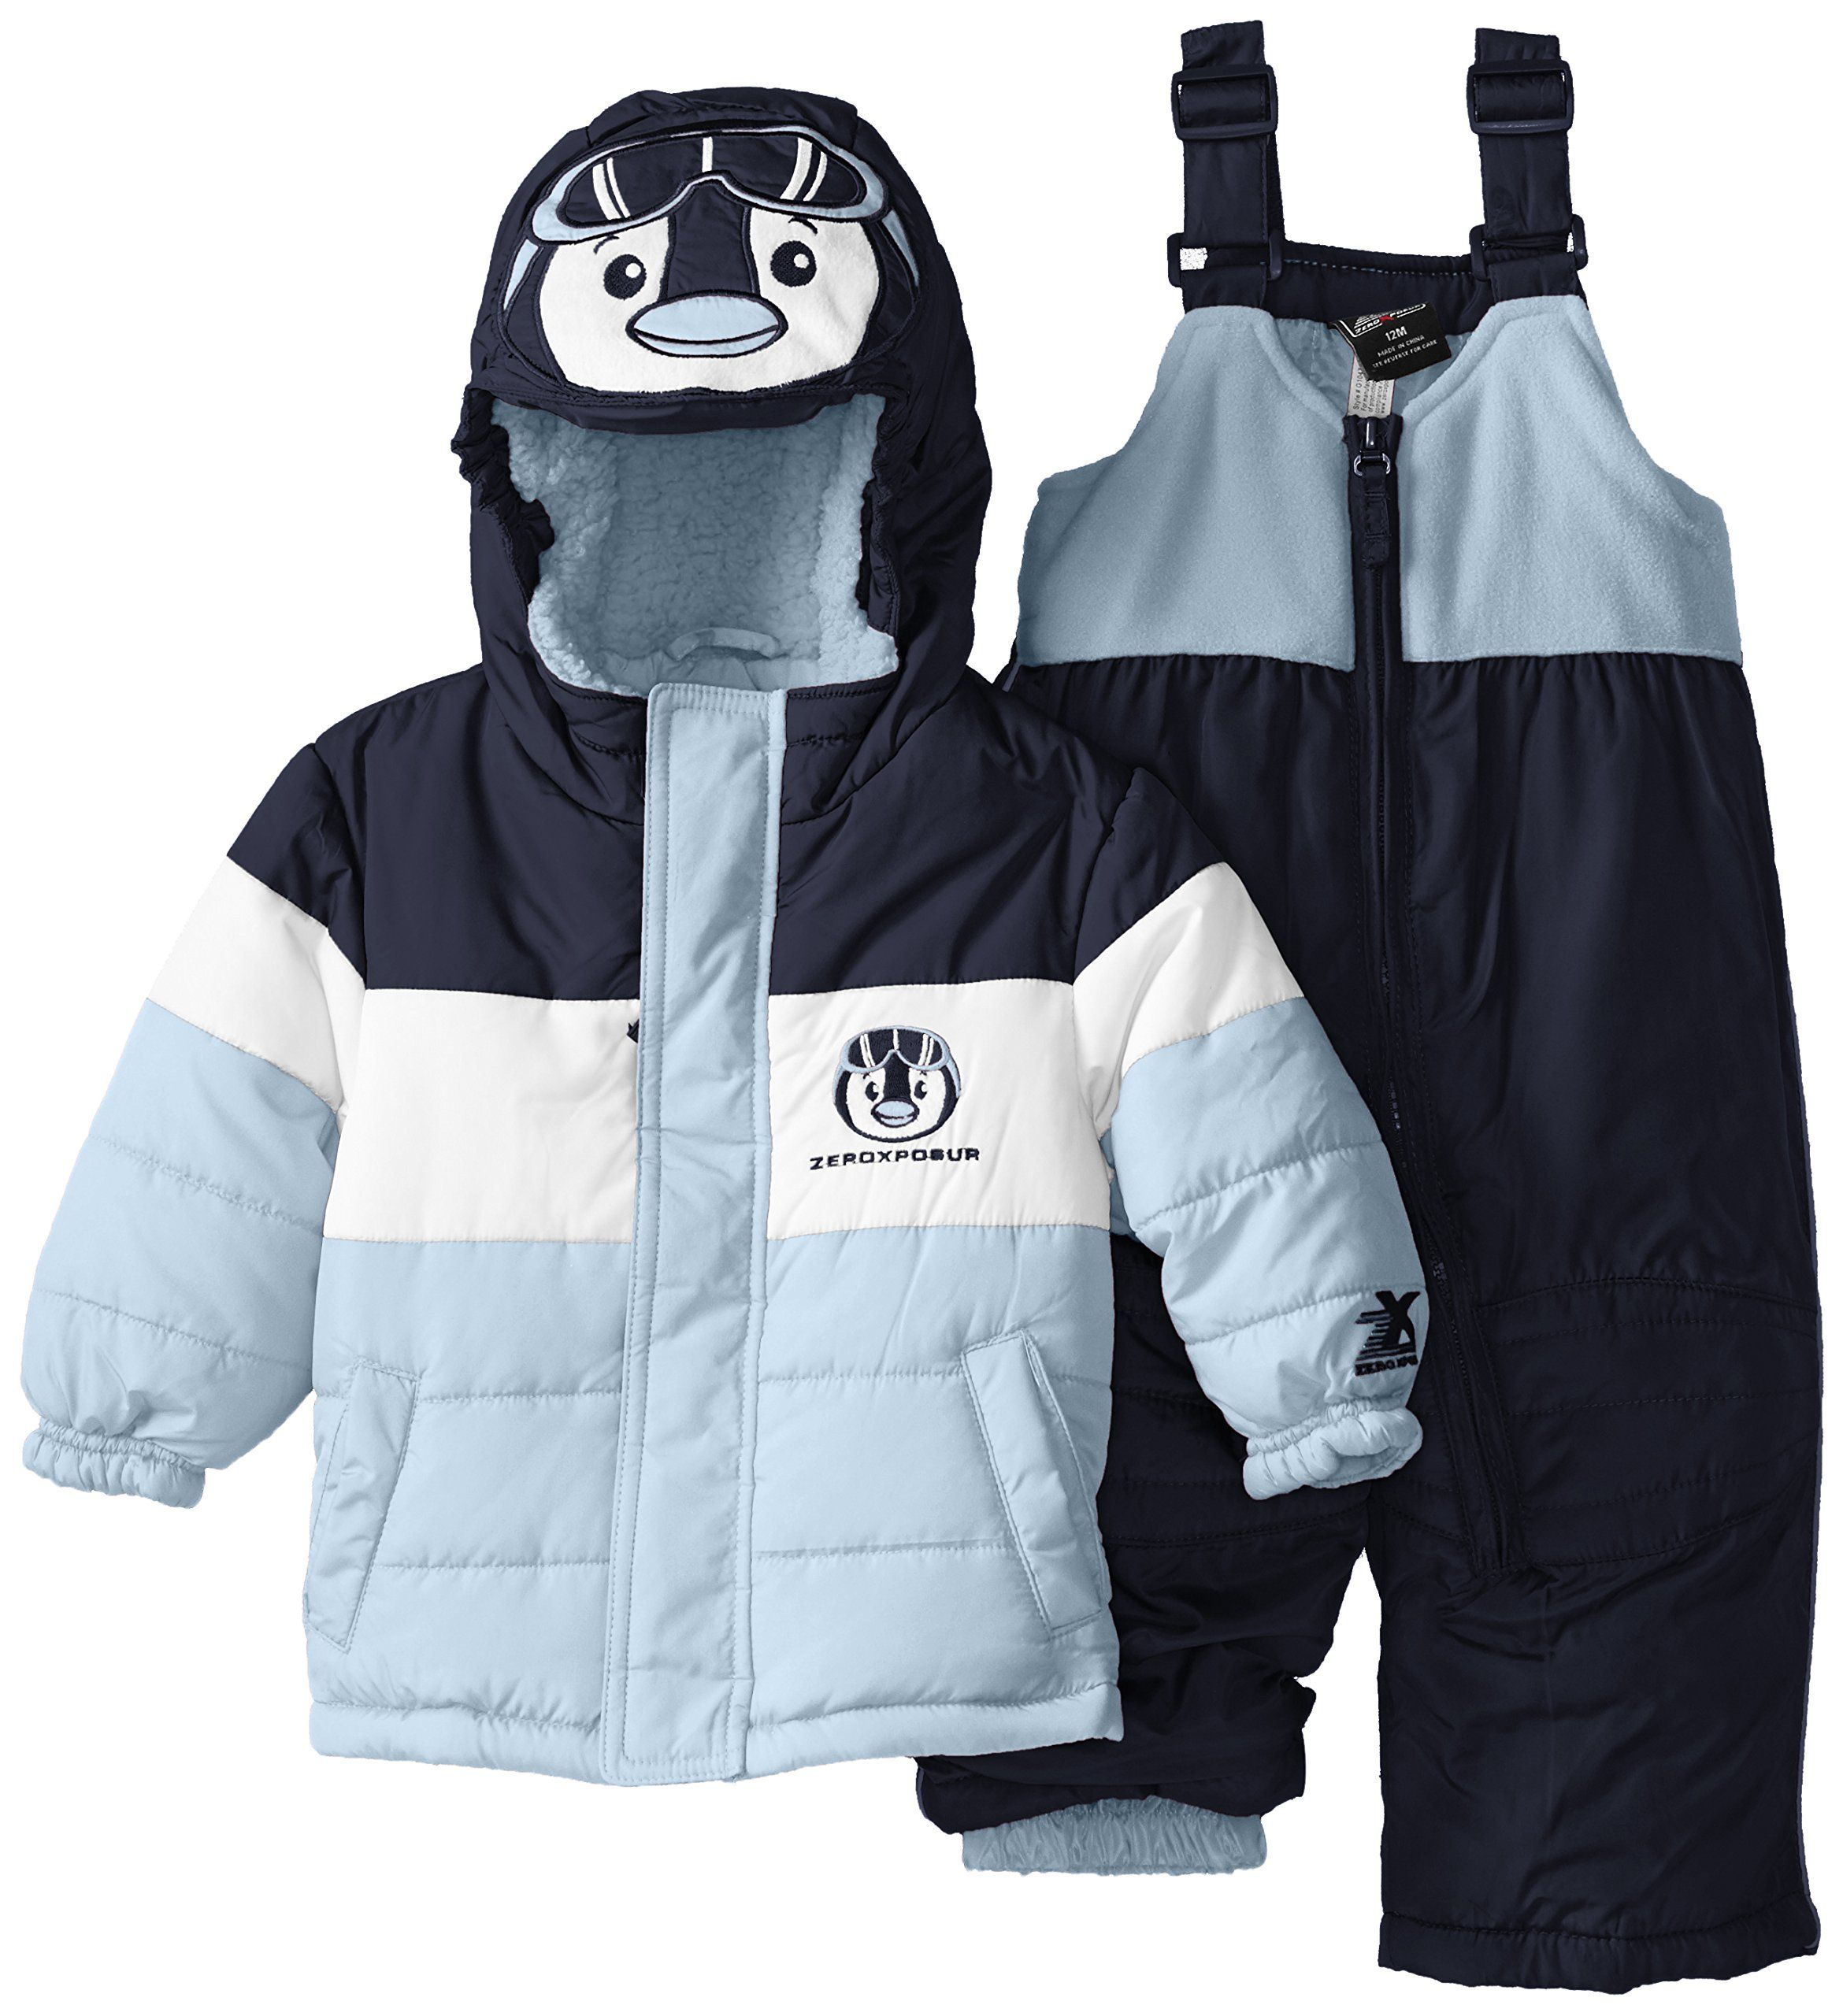 3T Zero XPosur snow coat | Snow coat, Coat, Clothes design